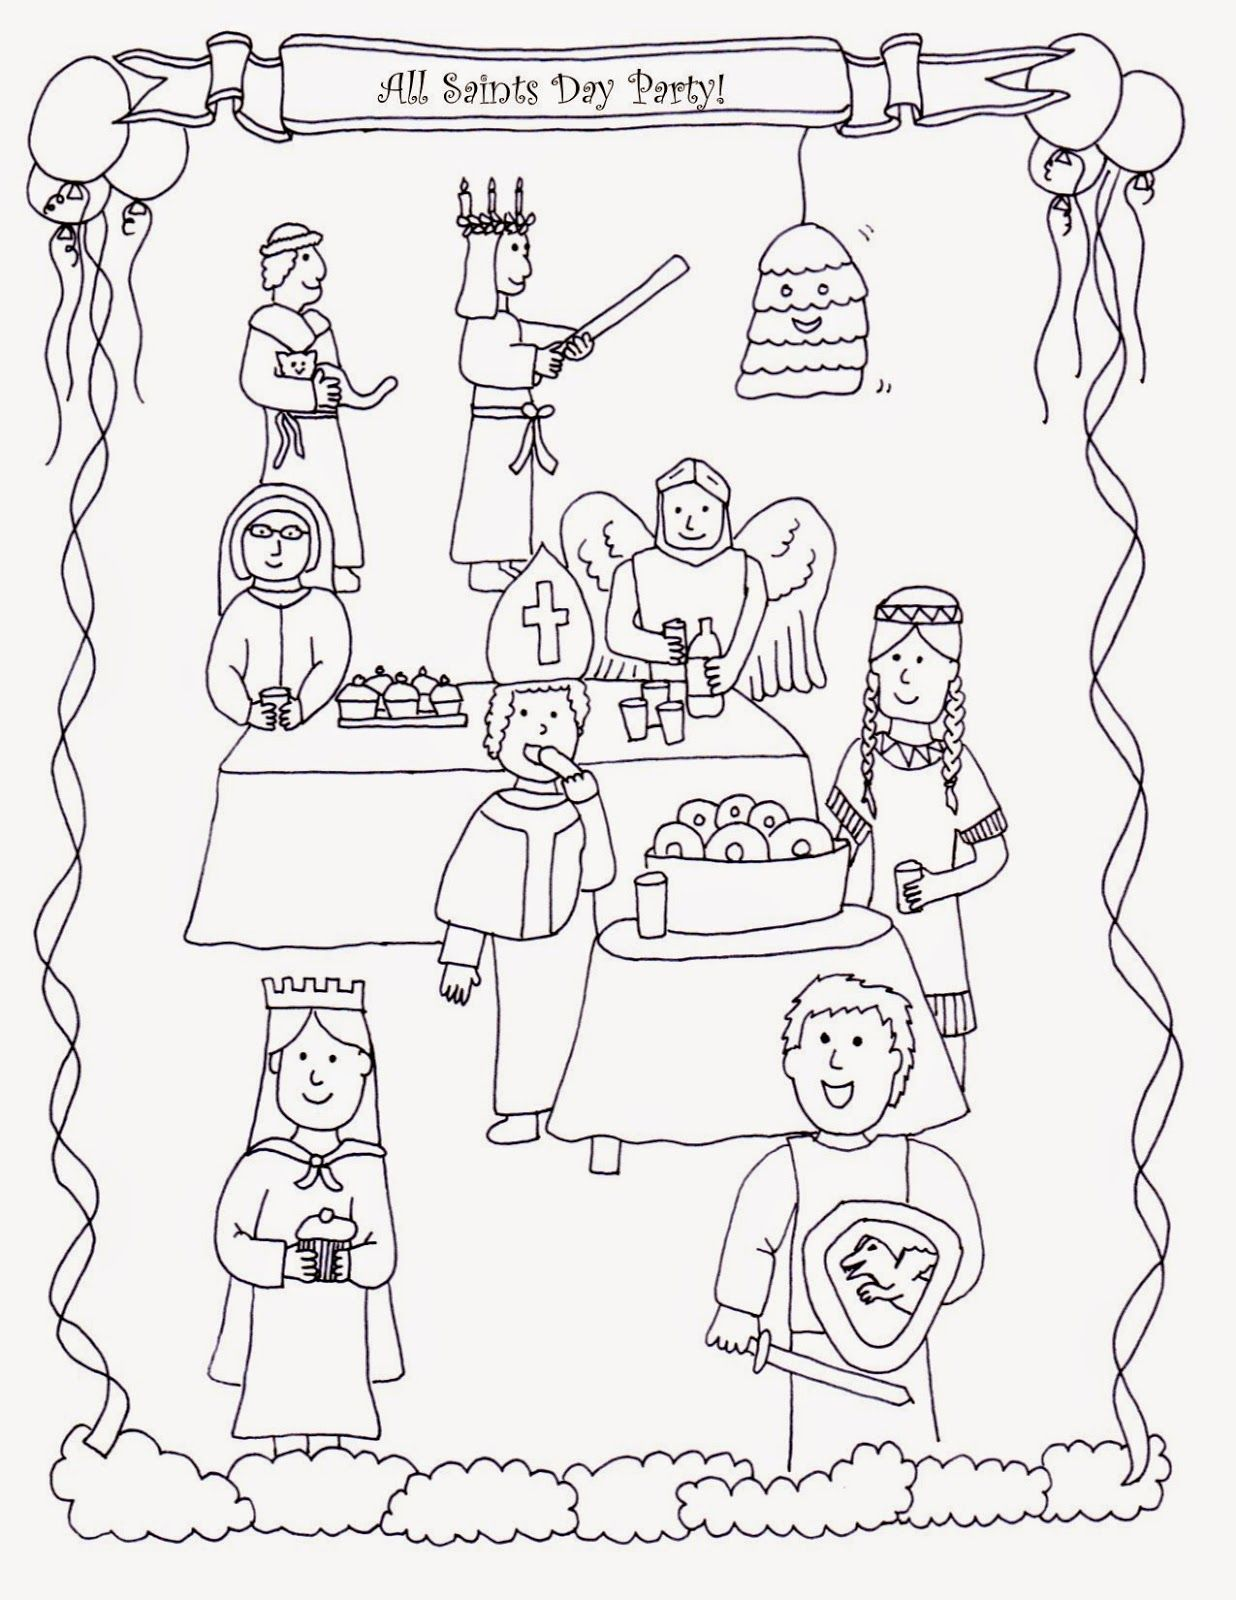 Drawn2bcreative All Saints Day Coloring Page